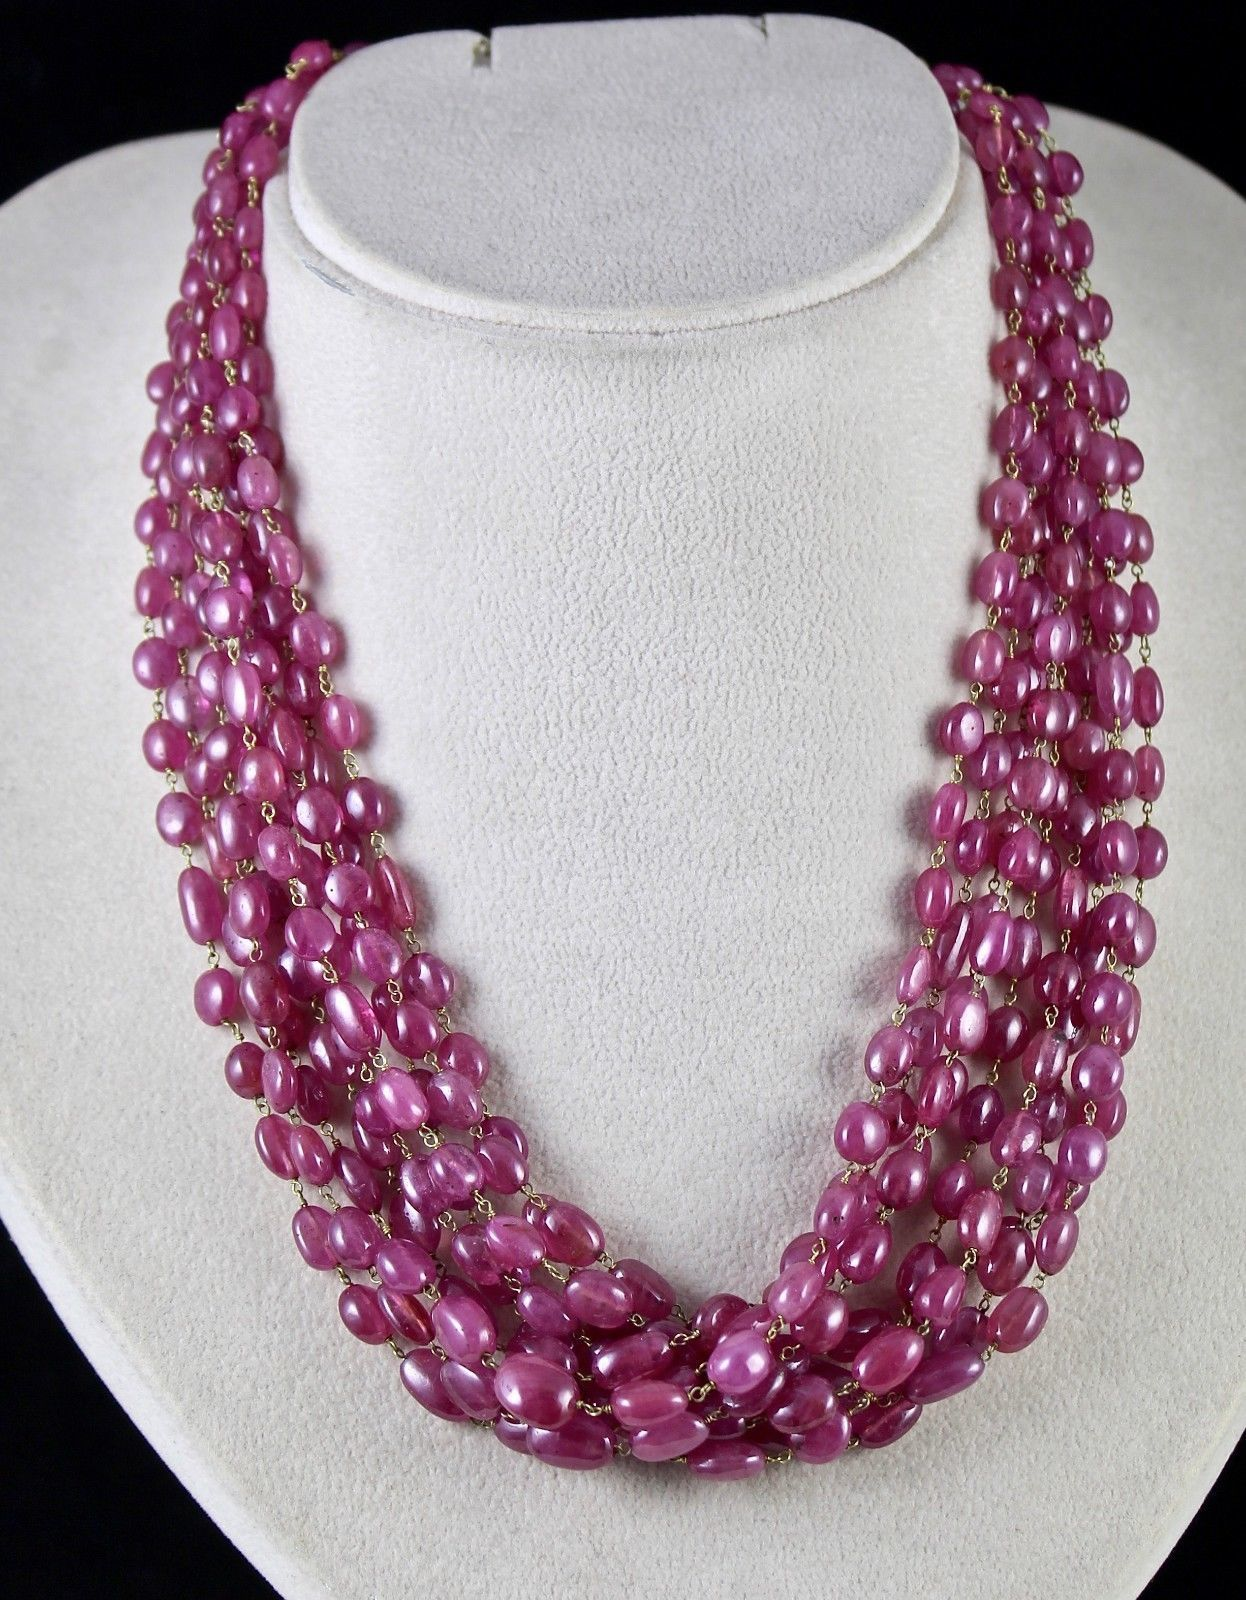 PINK RUBY BEADS CABOCHON 9 LINE 780 CARATS GEMSTONE 18K GOLD LADIES NECKLACE